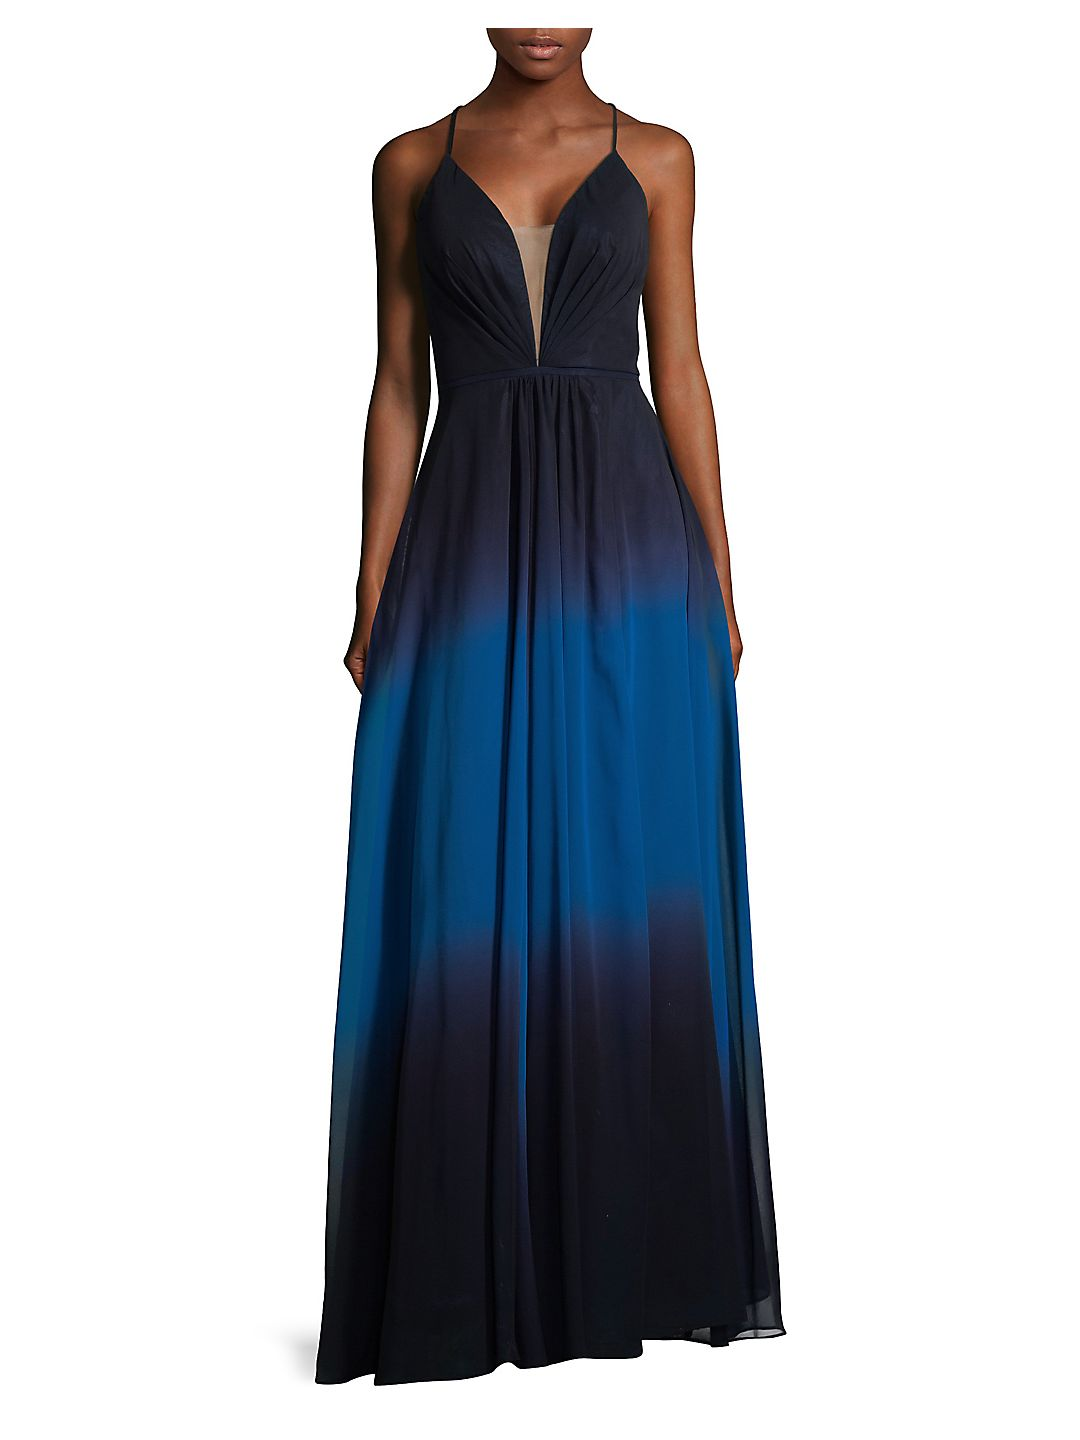 Ombre Floor-Length Gown